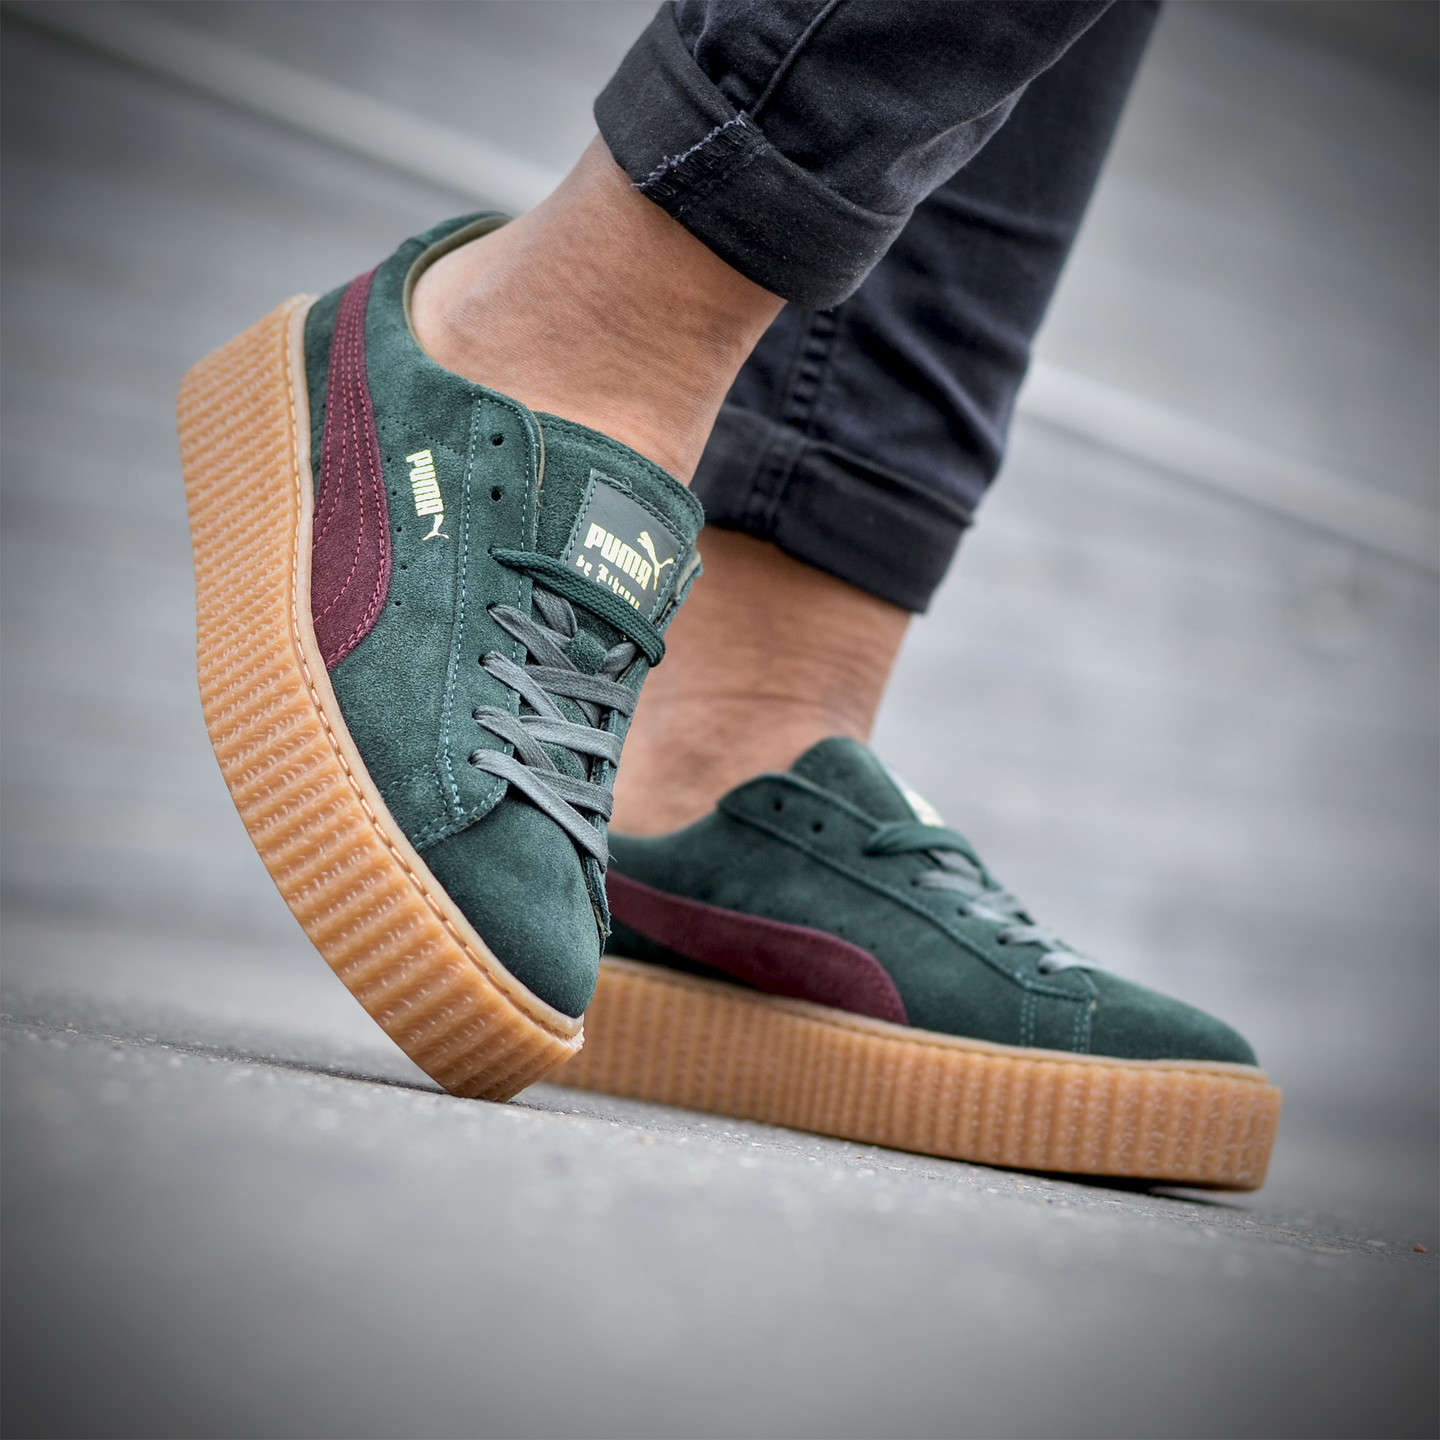 Puma Rihanna Suede Creepers Olive Green / Bordeaux 361005-07-38.5